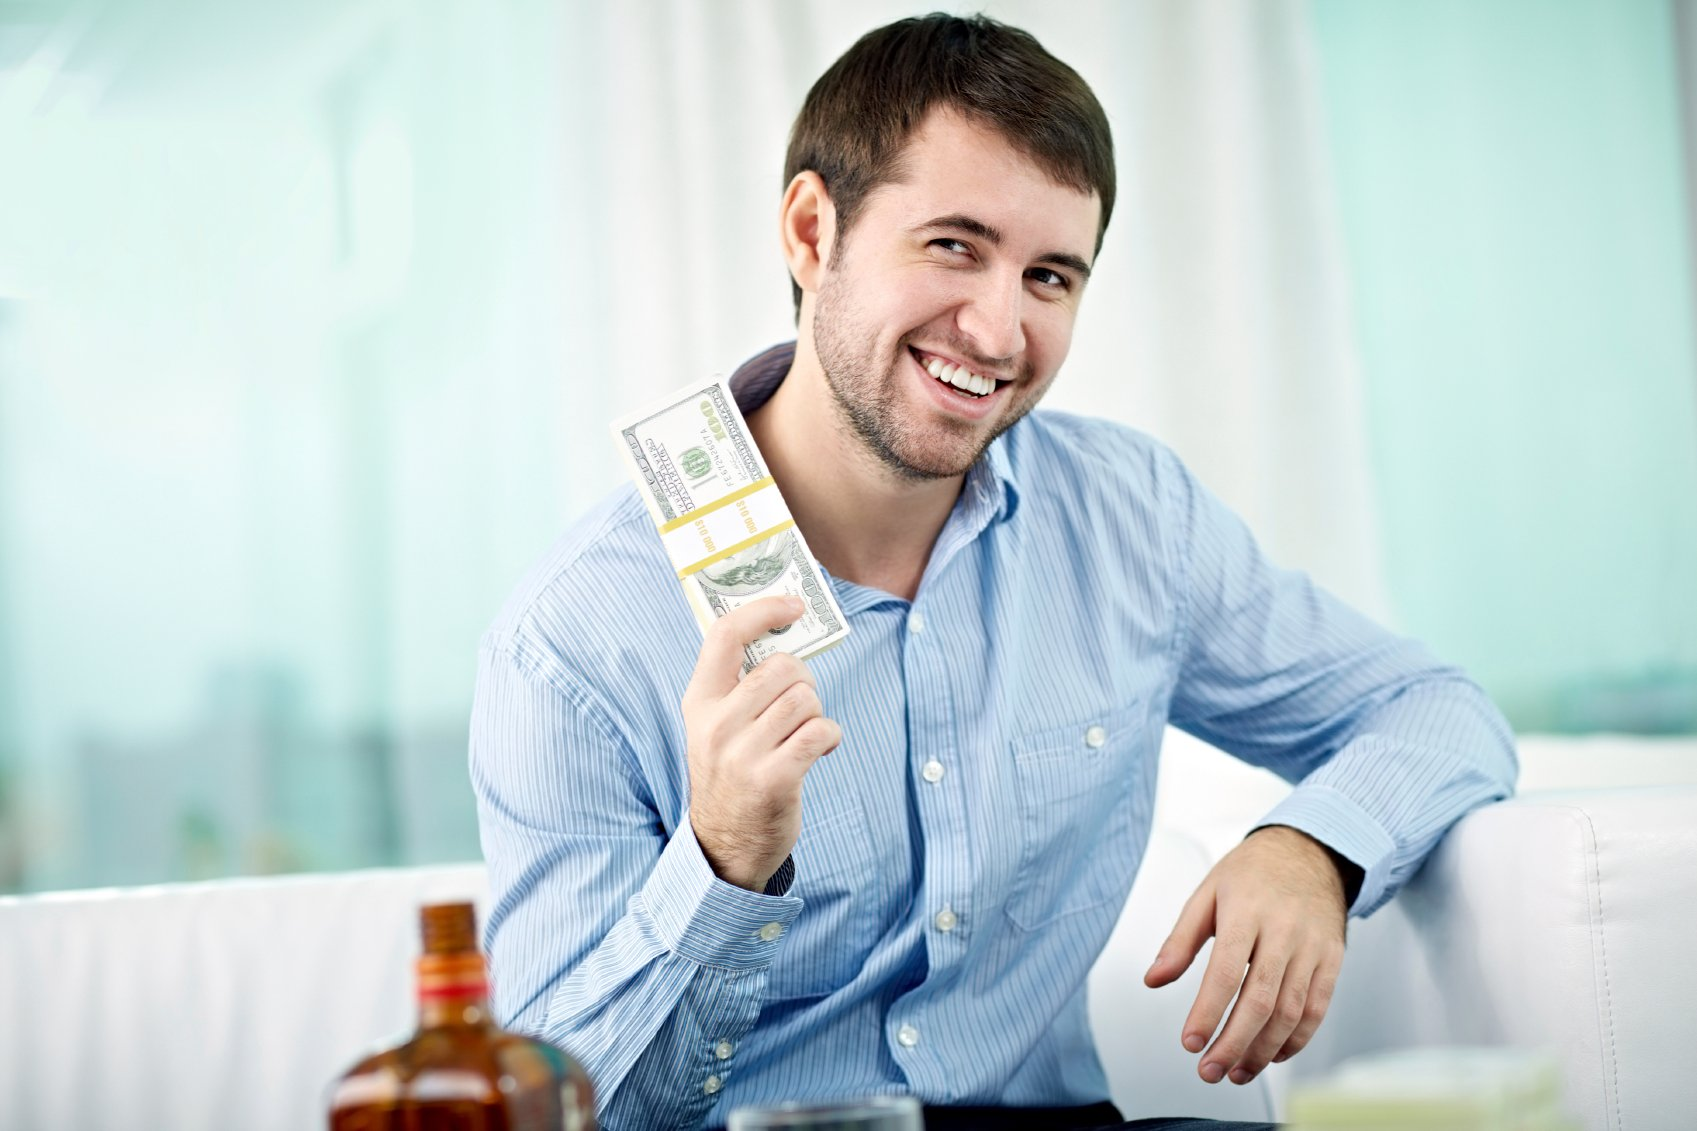 Stock photo, but he kinda looks like an Orrick associate, doesn't he?